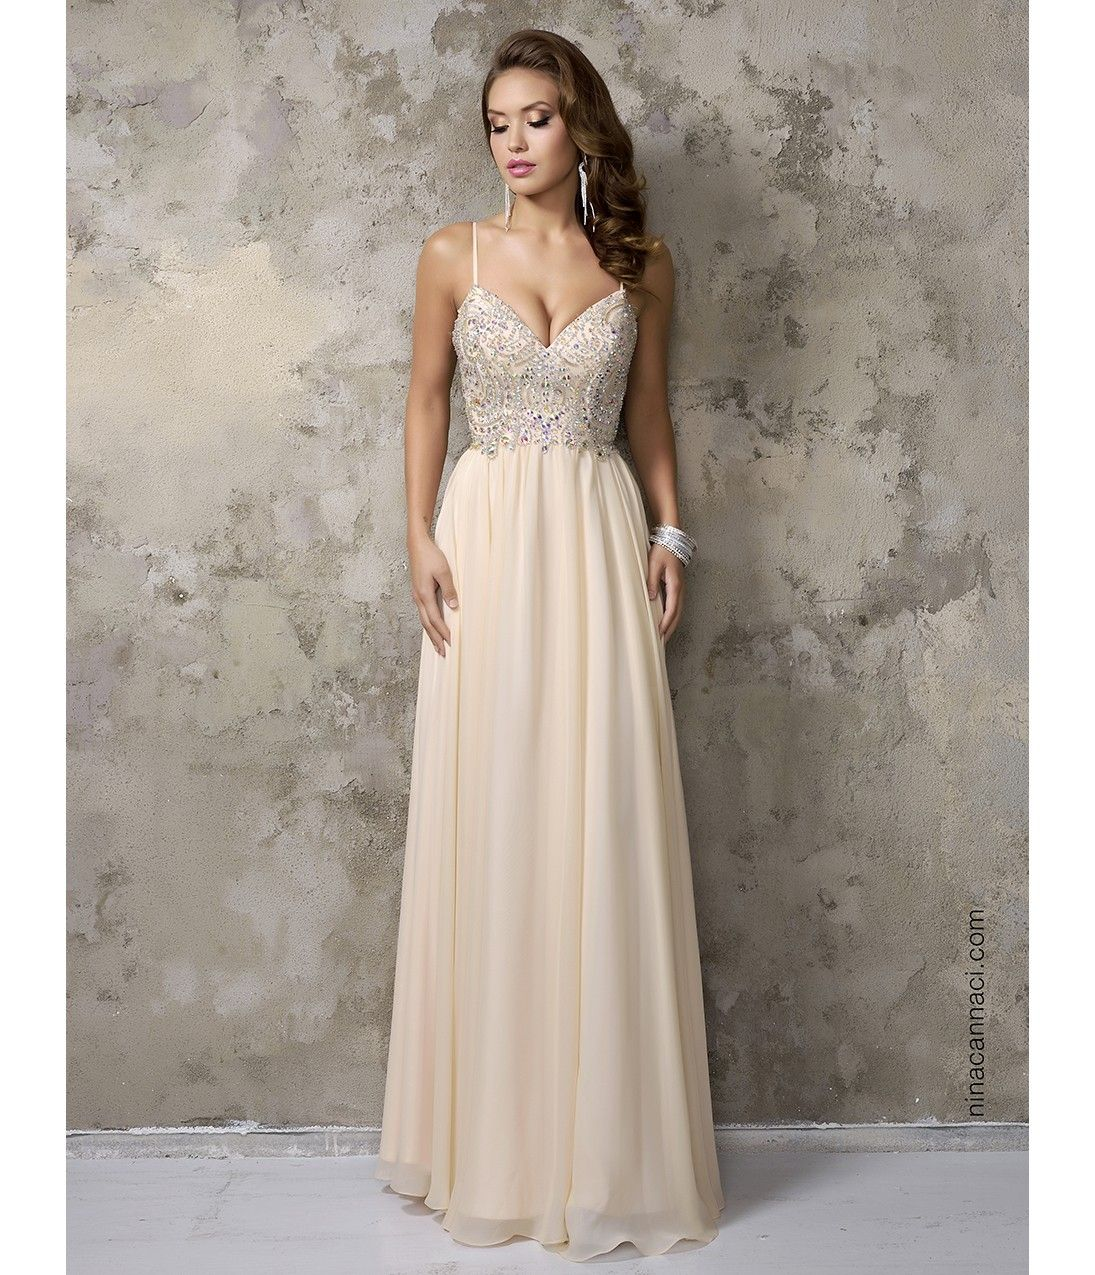 Best 25 Ball Gown Wedding Ideas On Pinterest: Best 25+ V Neck Prom Dresses Ideas On Pinterest